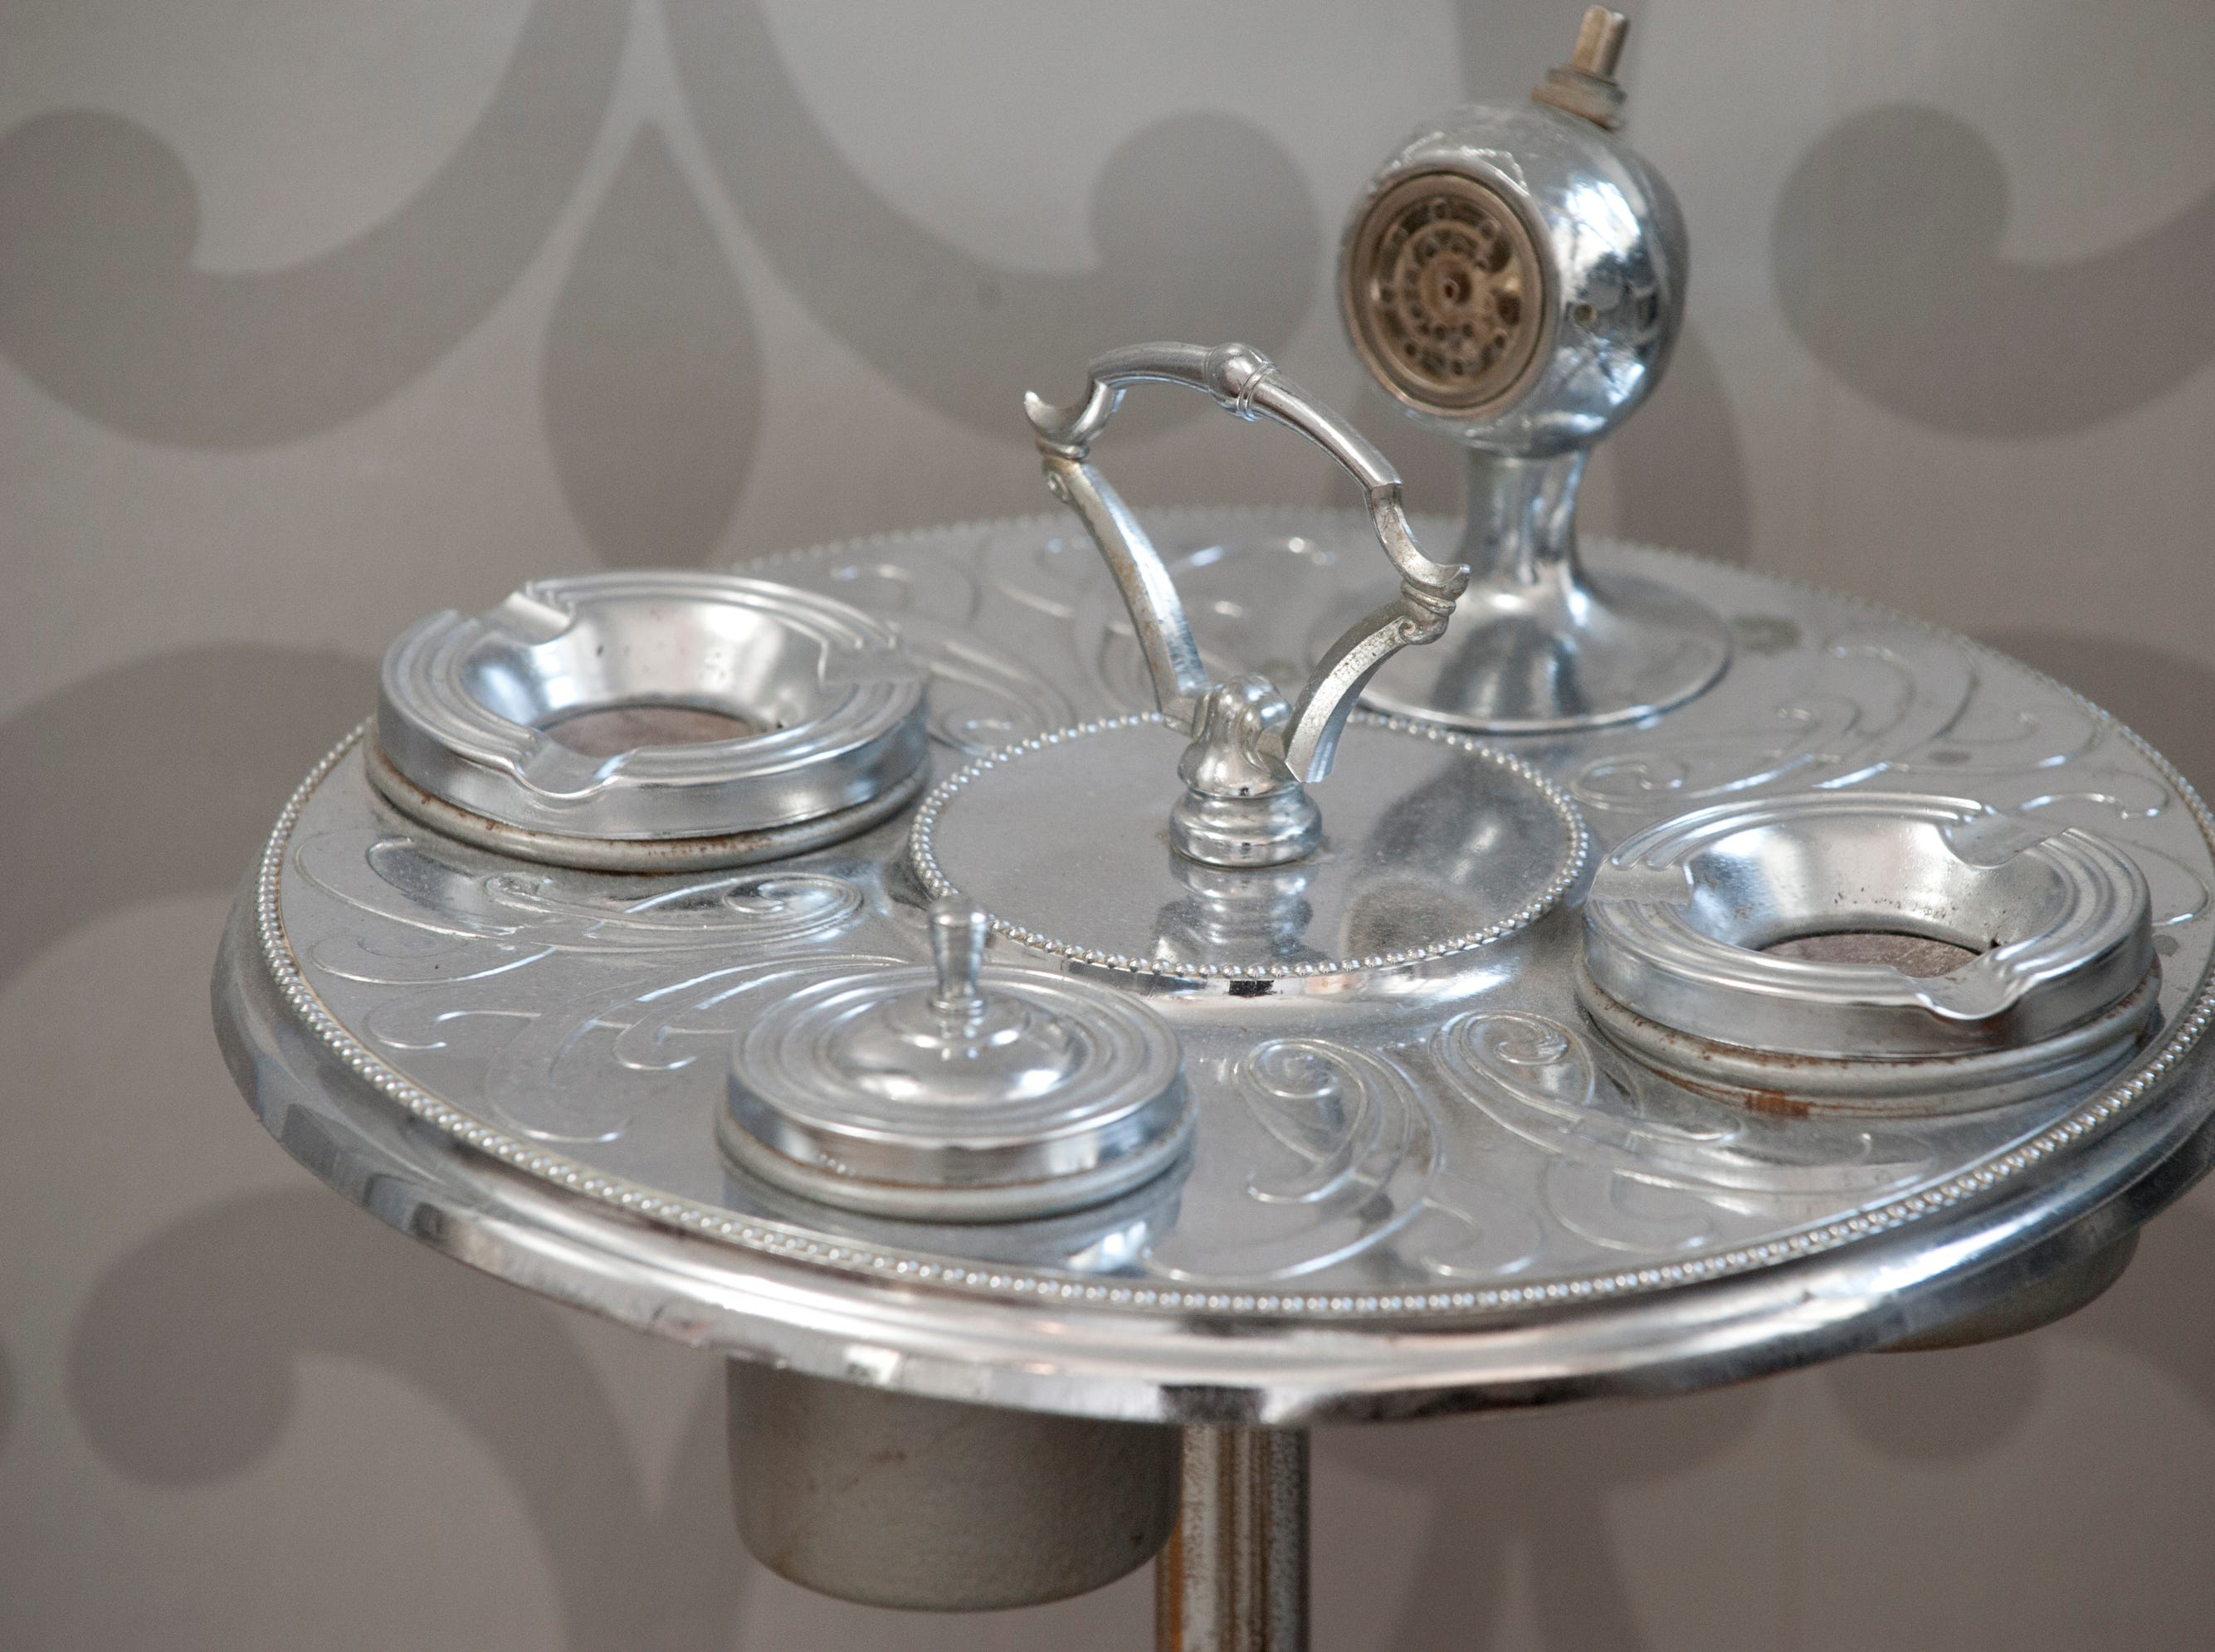 The 1st floor guest room features a vintage chrome and glass smoking stand.10 December 2018